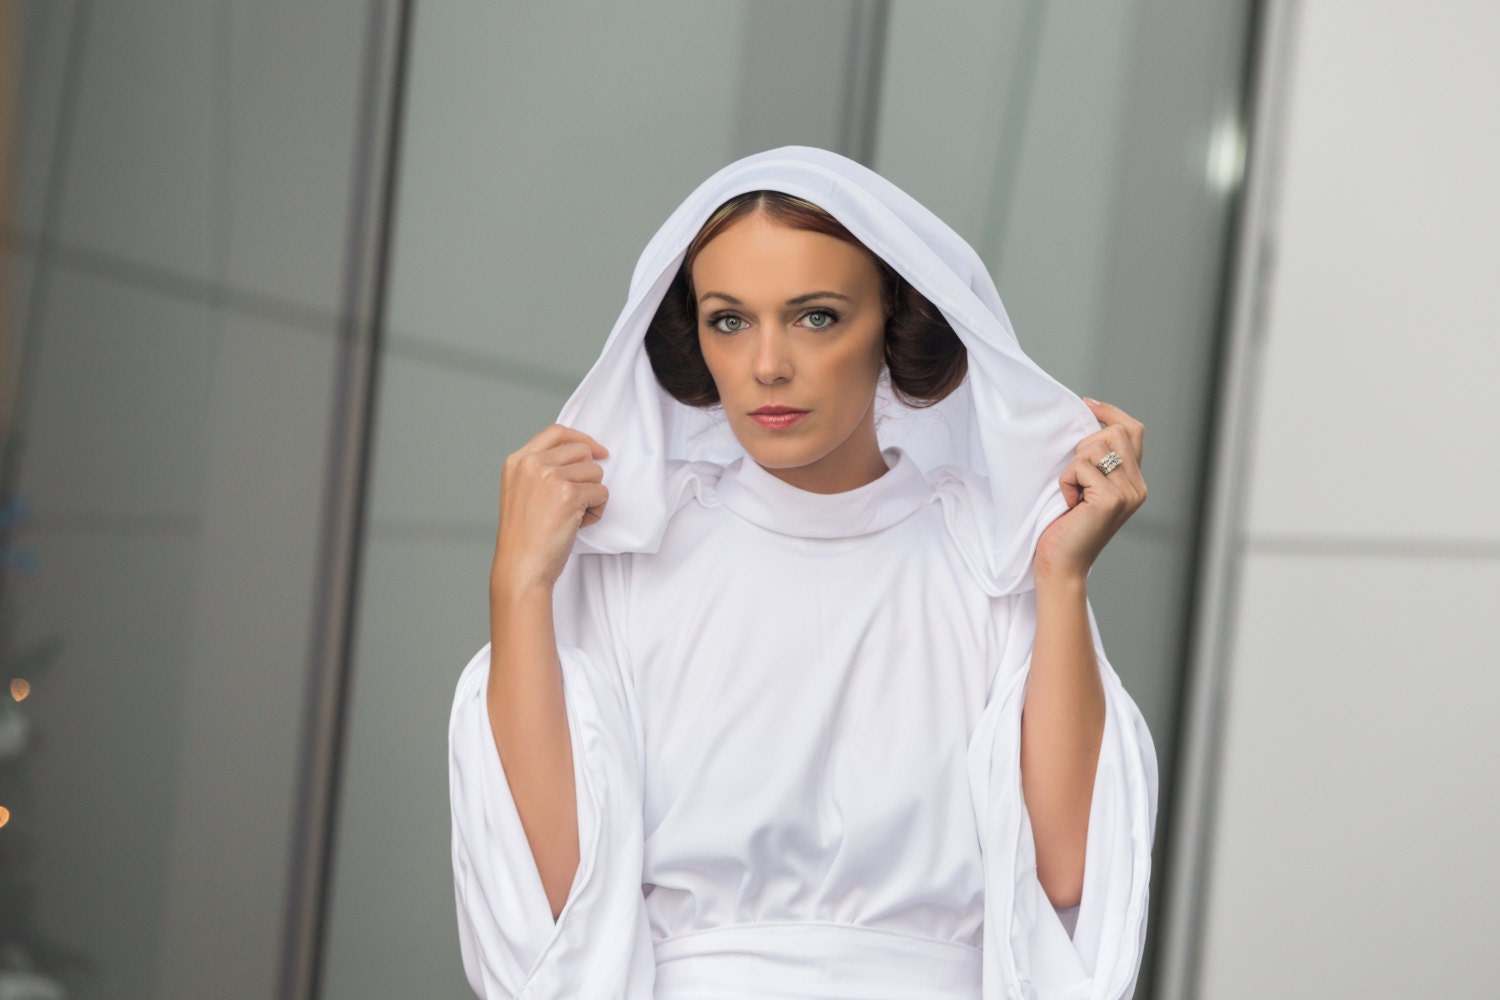 Princess Leia White Gown Star Wars Cosplay HalloweenEpisode